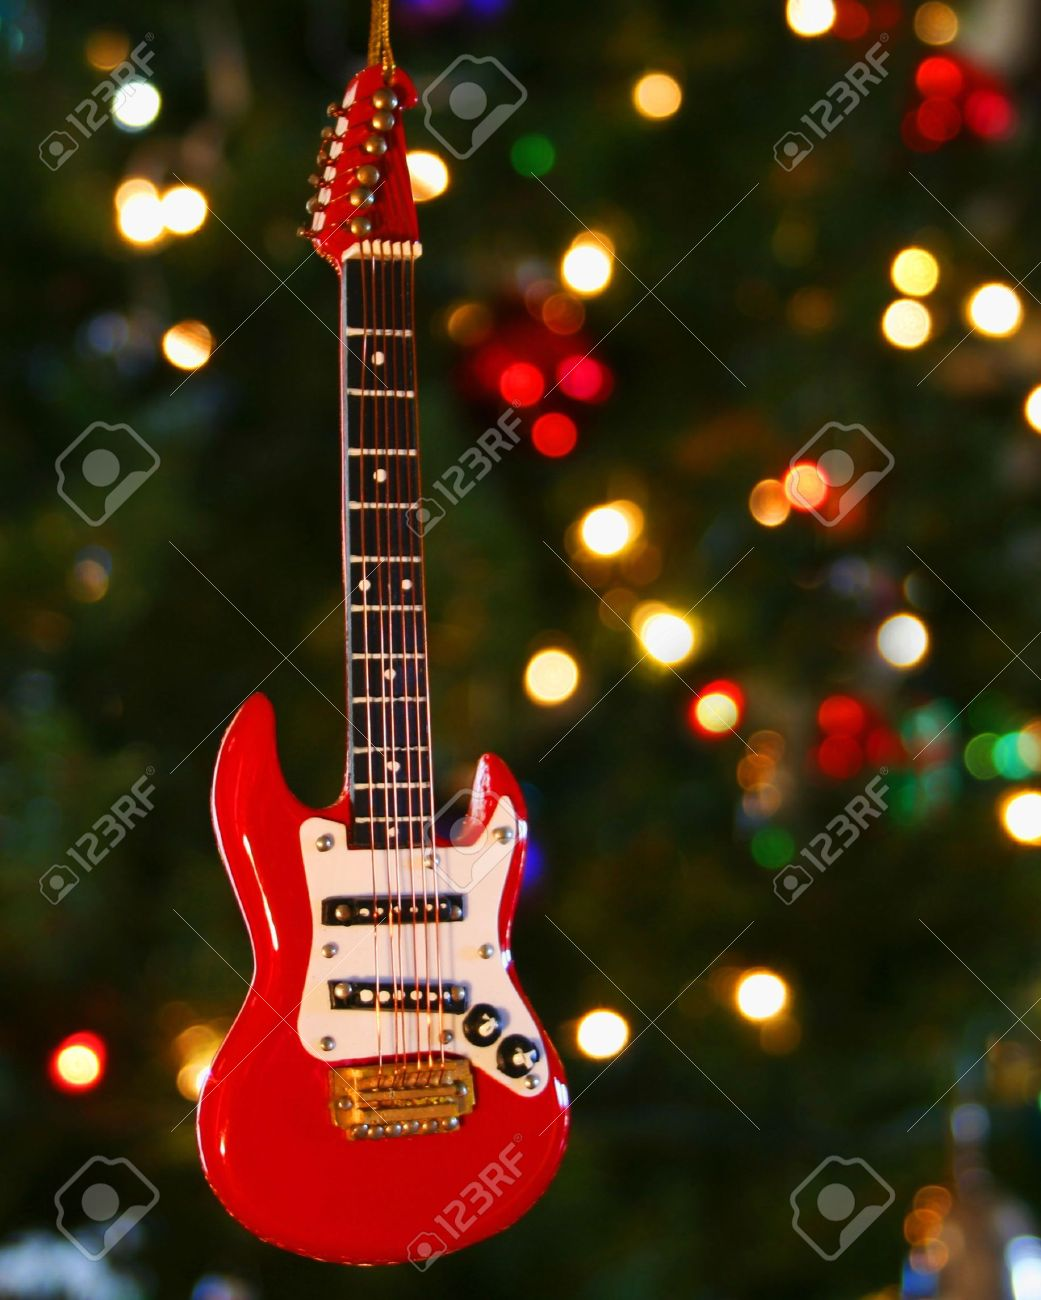 A Red Electric Guitar Ornament And Lights On A Christmas Tree Stock ...